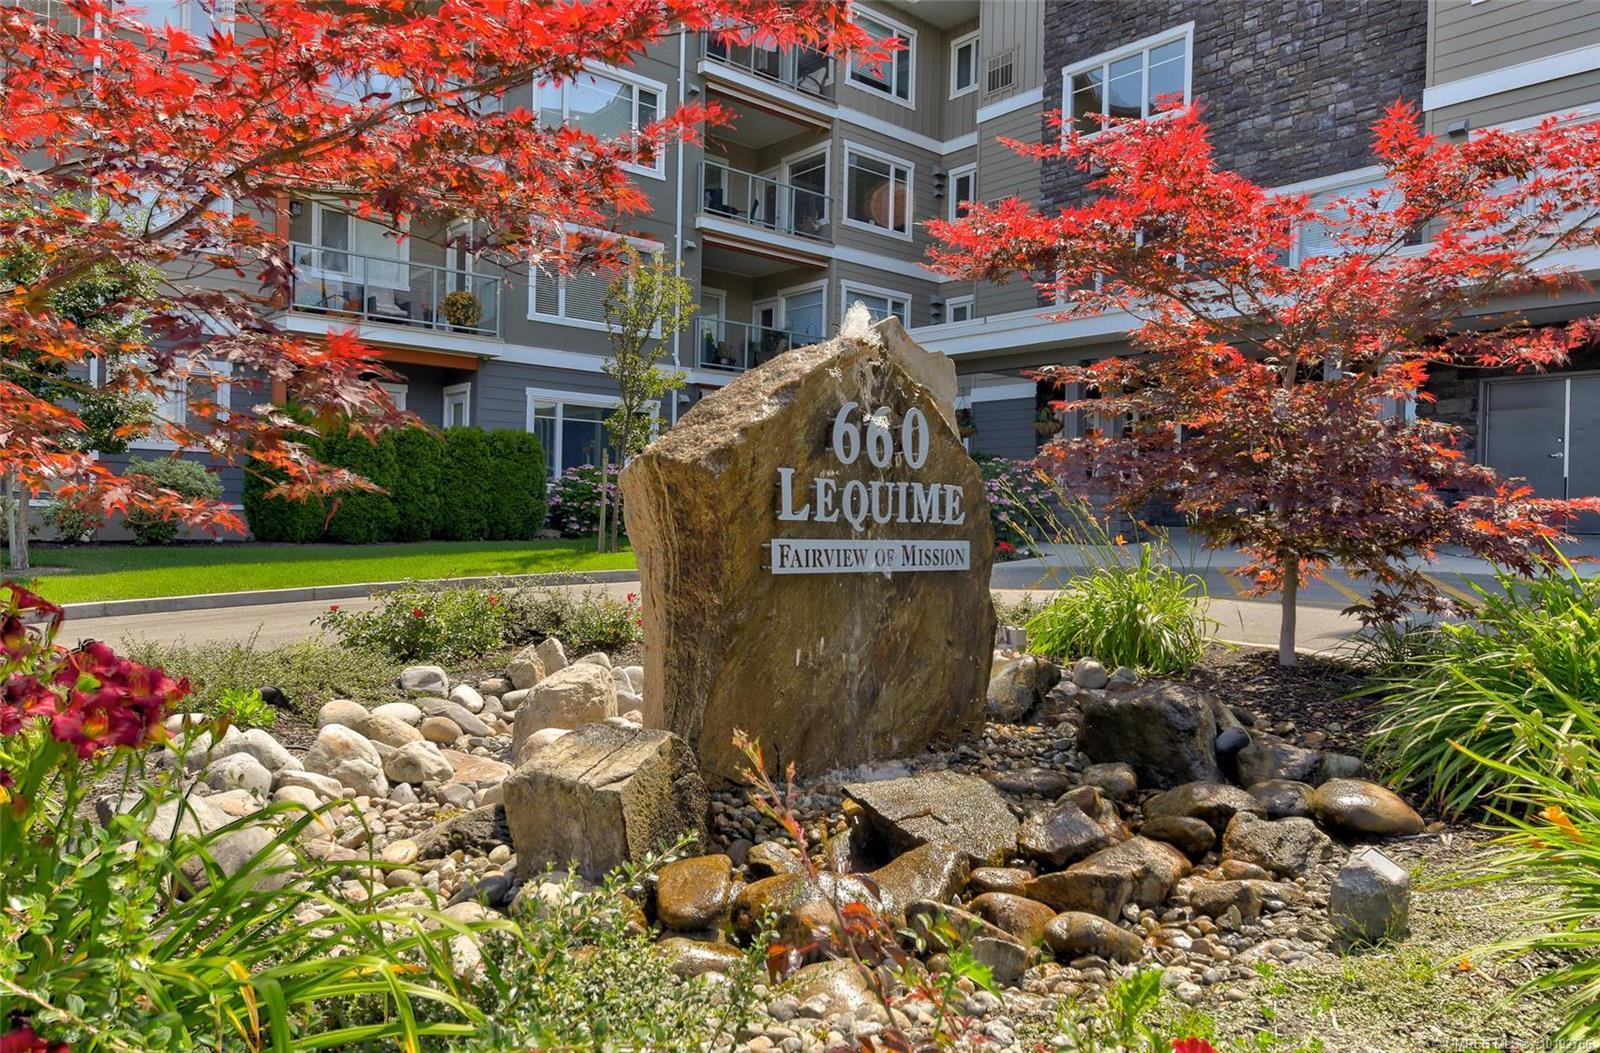 Removed: 106 - 660 Lequime Road, Kelowna, BC - Removed on 2019-10-31 07:57:10